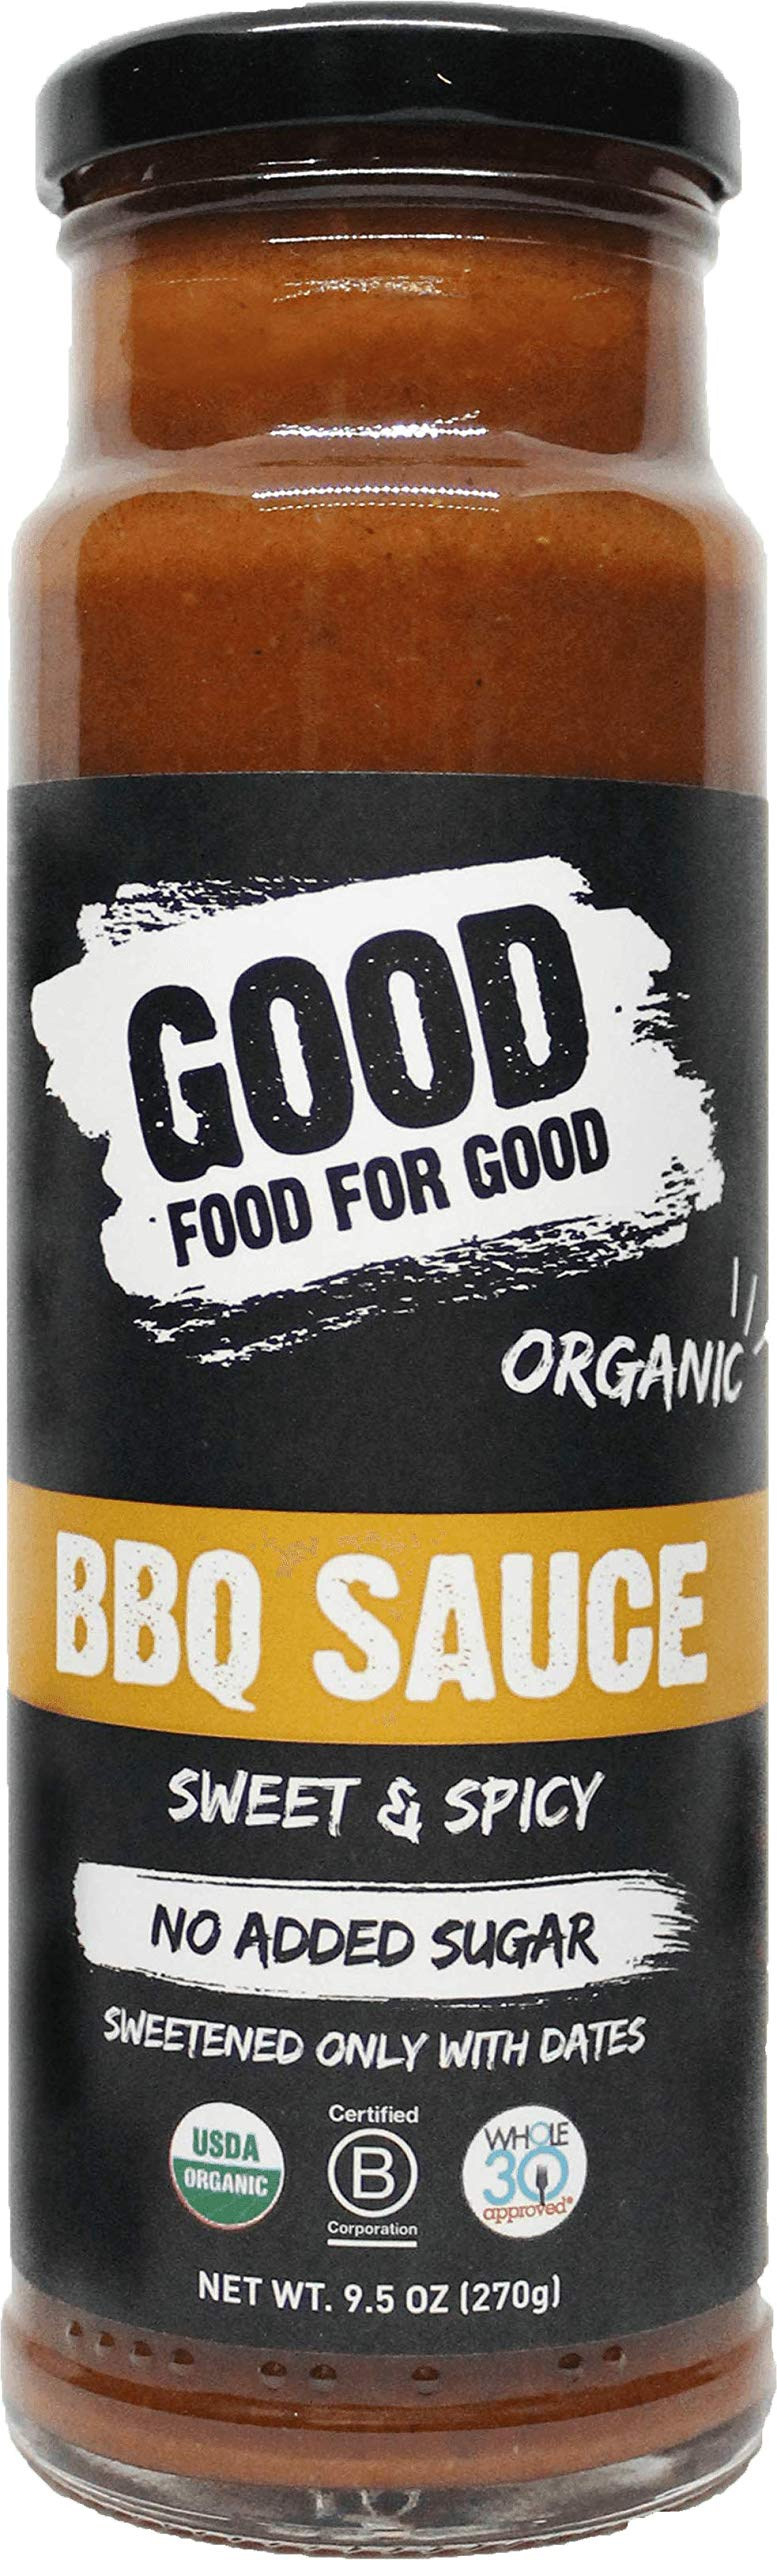 Good Food For Good Organic Sweet and Spicy BBQ Sauce, No Added Sugar Keto Sauce, Refined Sugarfree; Vegan/Paleo/Non GMO/Gluten Free/Low Salt/Soy Free/Corn Free; Naturally Sweetened with Dates (9.5oz) by GOOD FOOD FOR GOOD